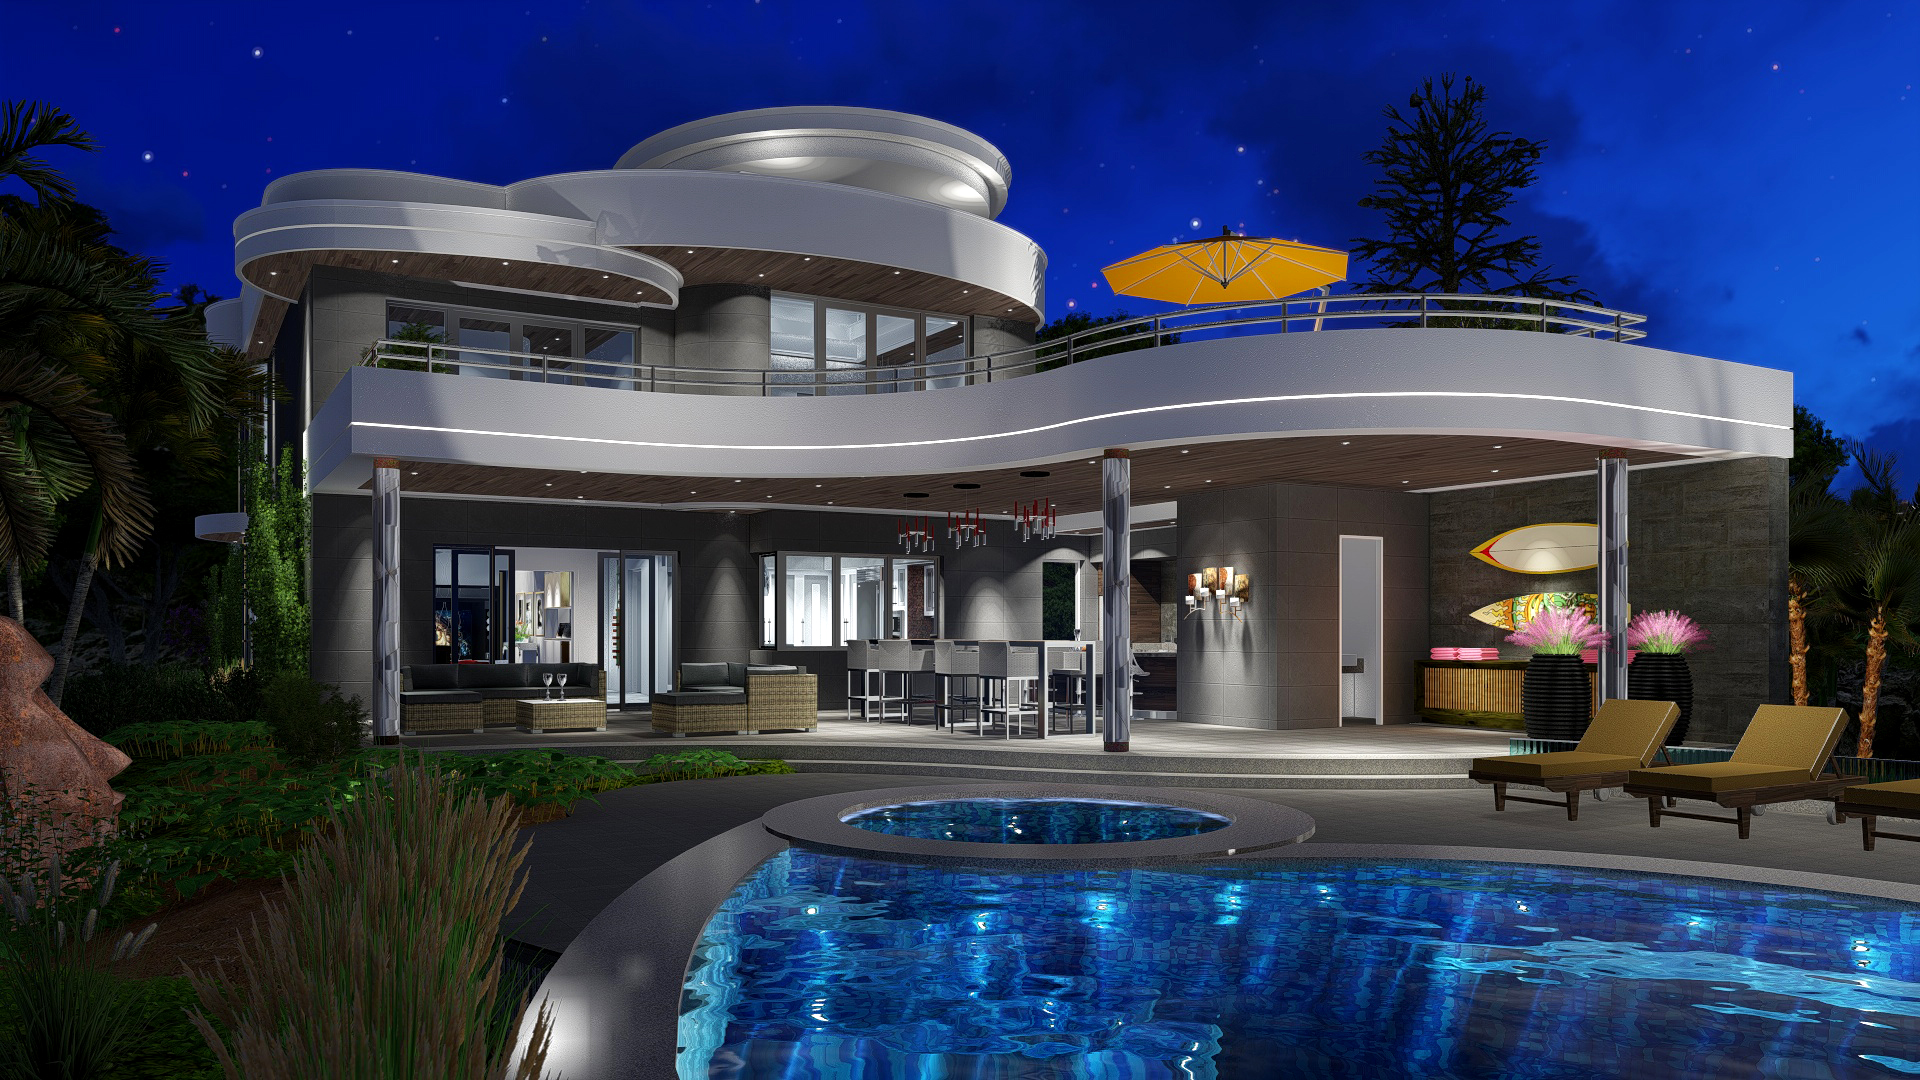 Caribbean islands luxury resort home gallery next for Generation house